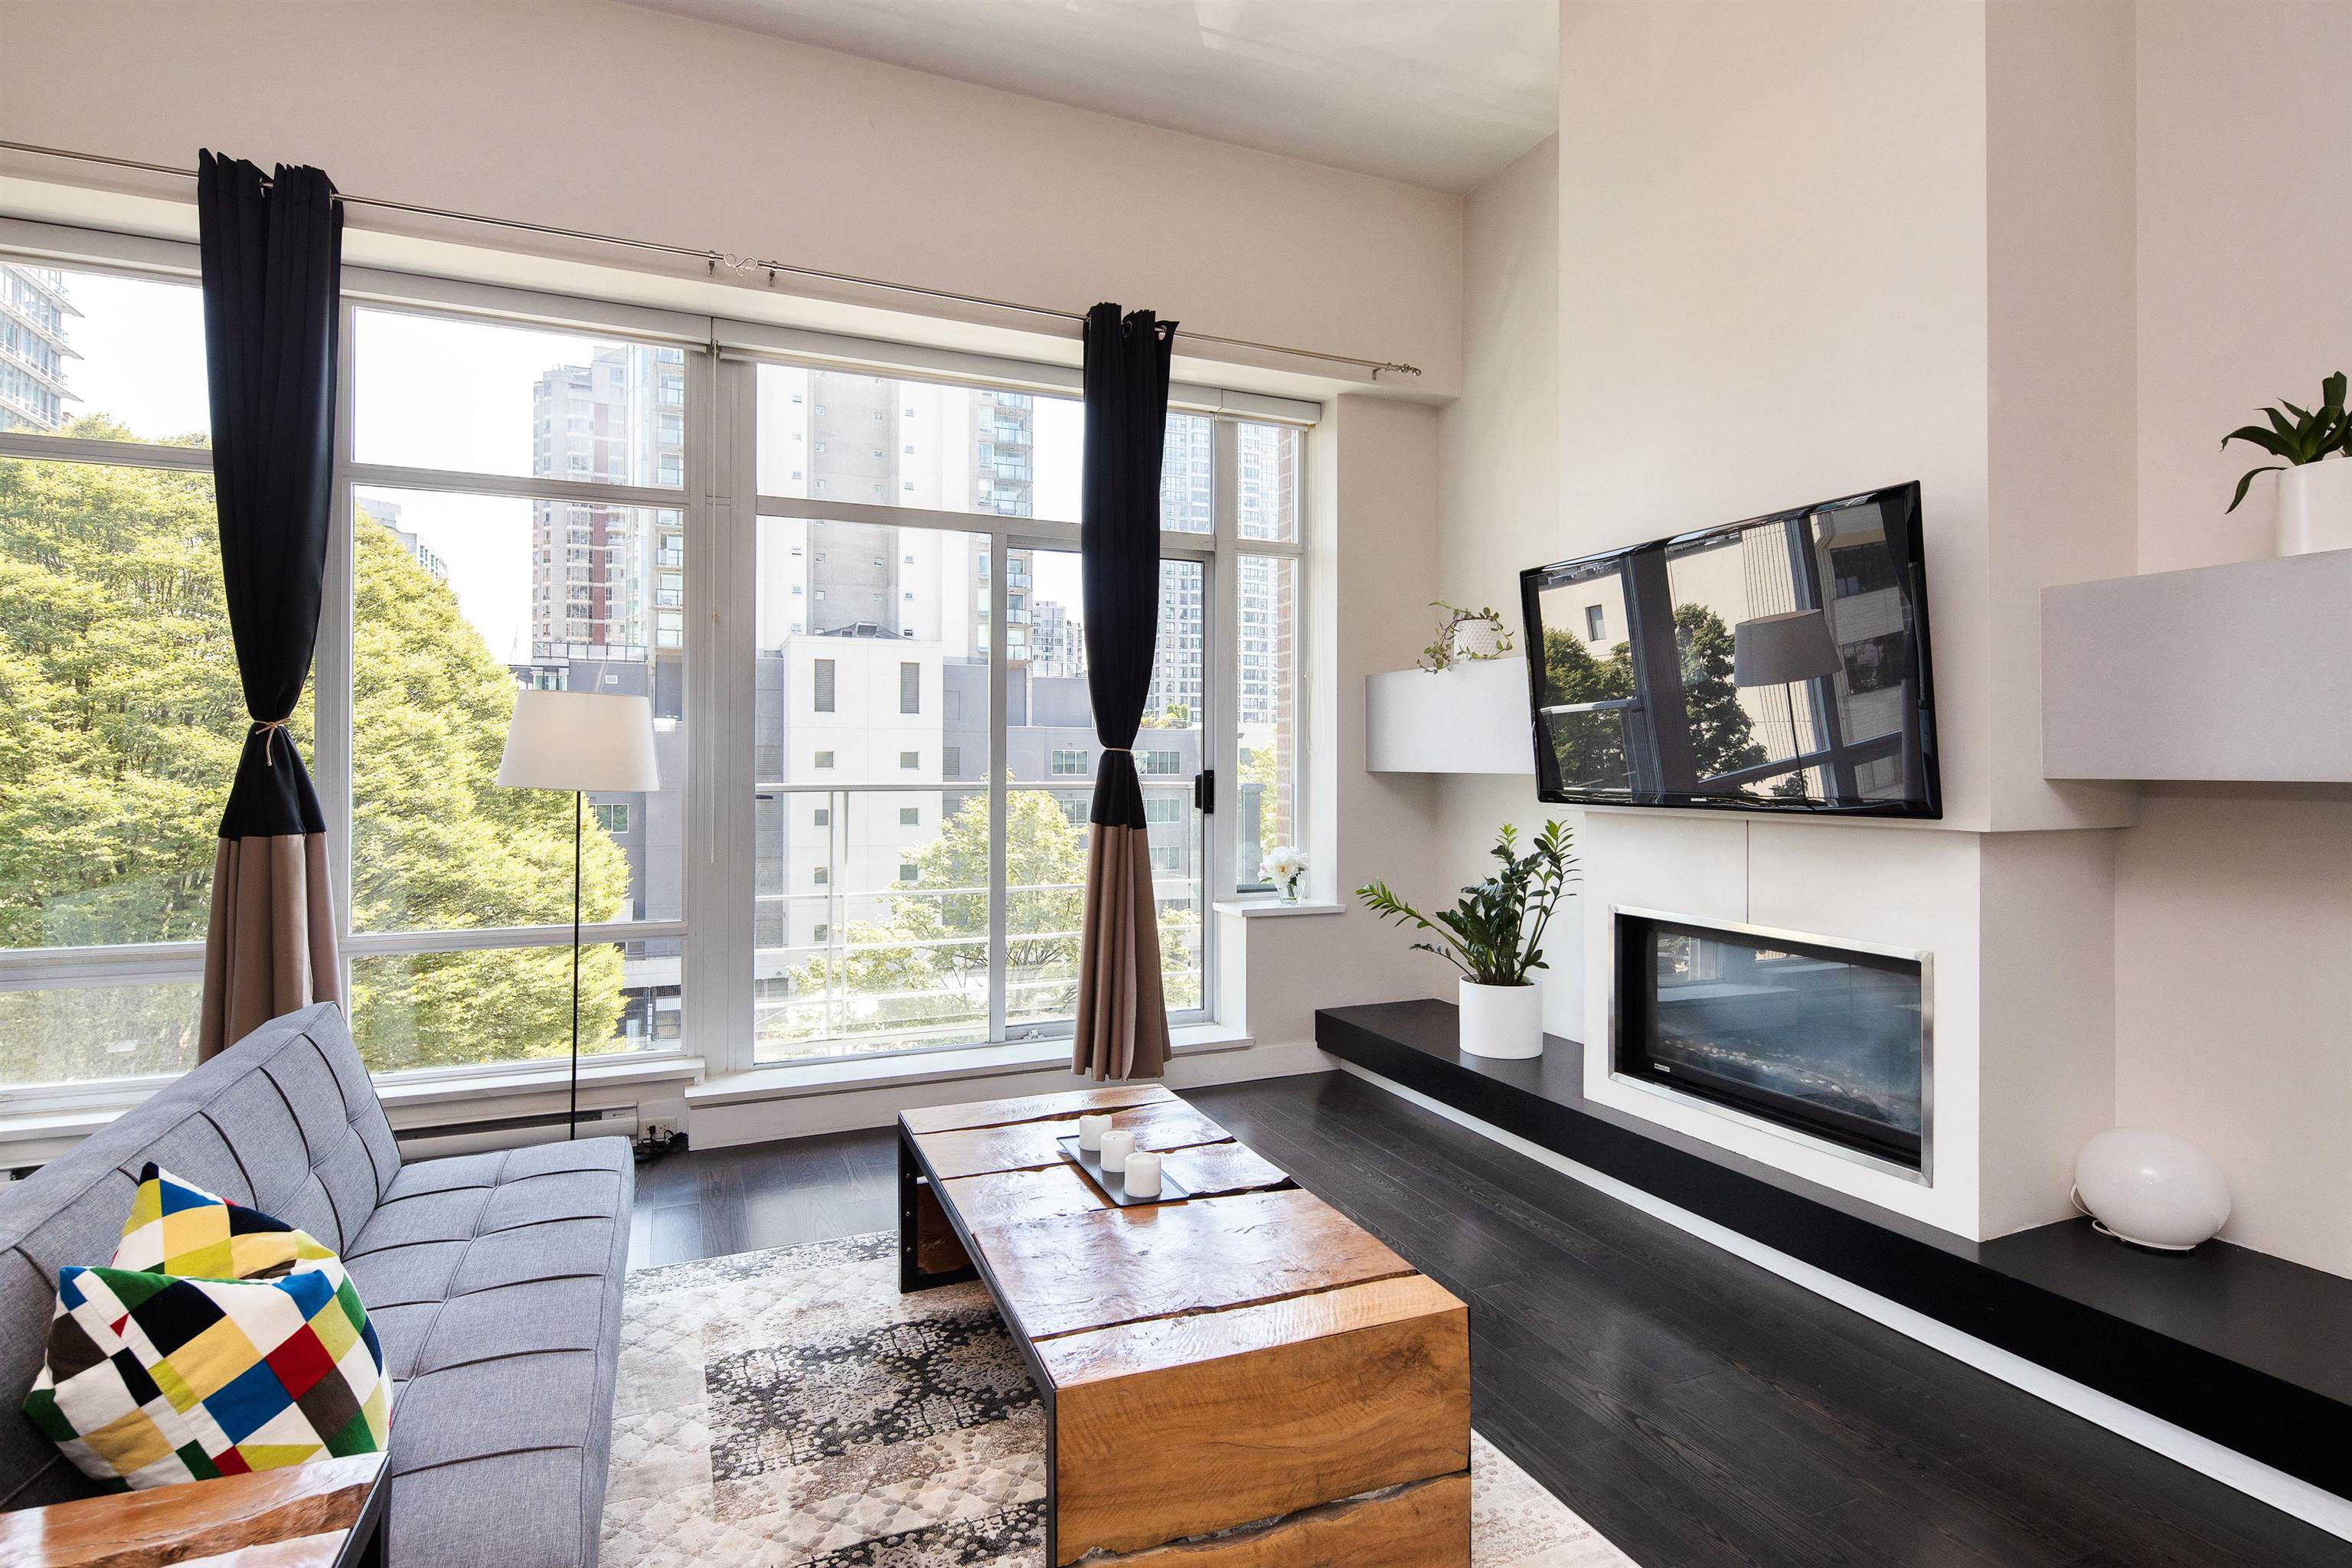 402 535 SMITHE STREET - Downtown VW Apartment/Condo for sale, 1 Bedroom (R2621667) - #1